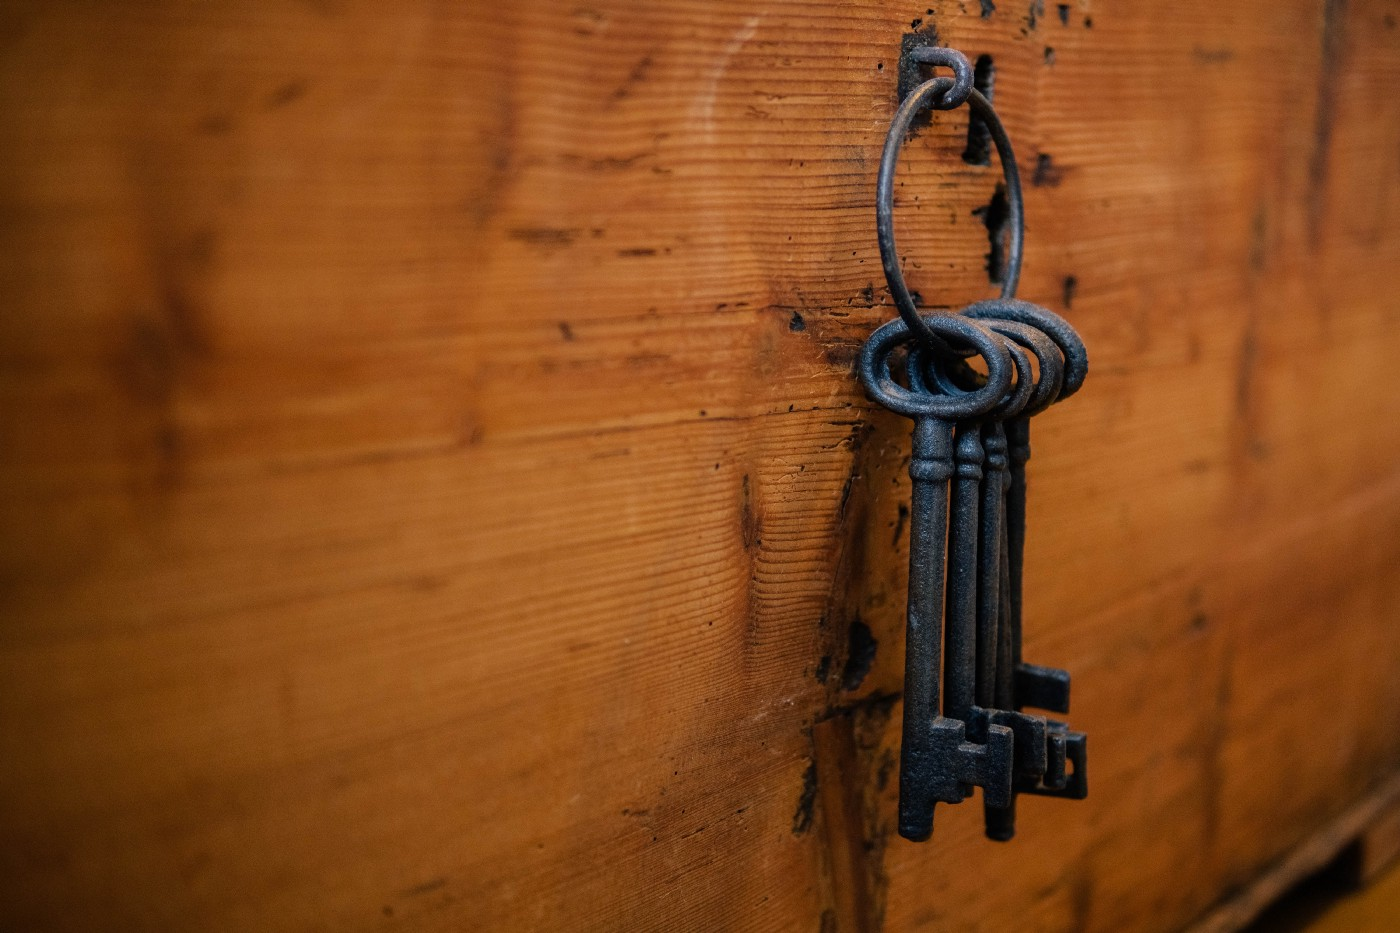 keys hanging on a hook on a wooden wall